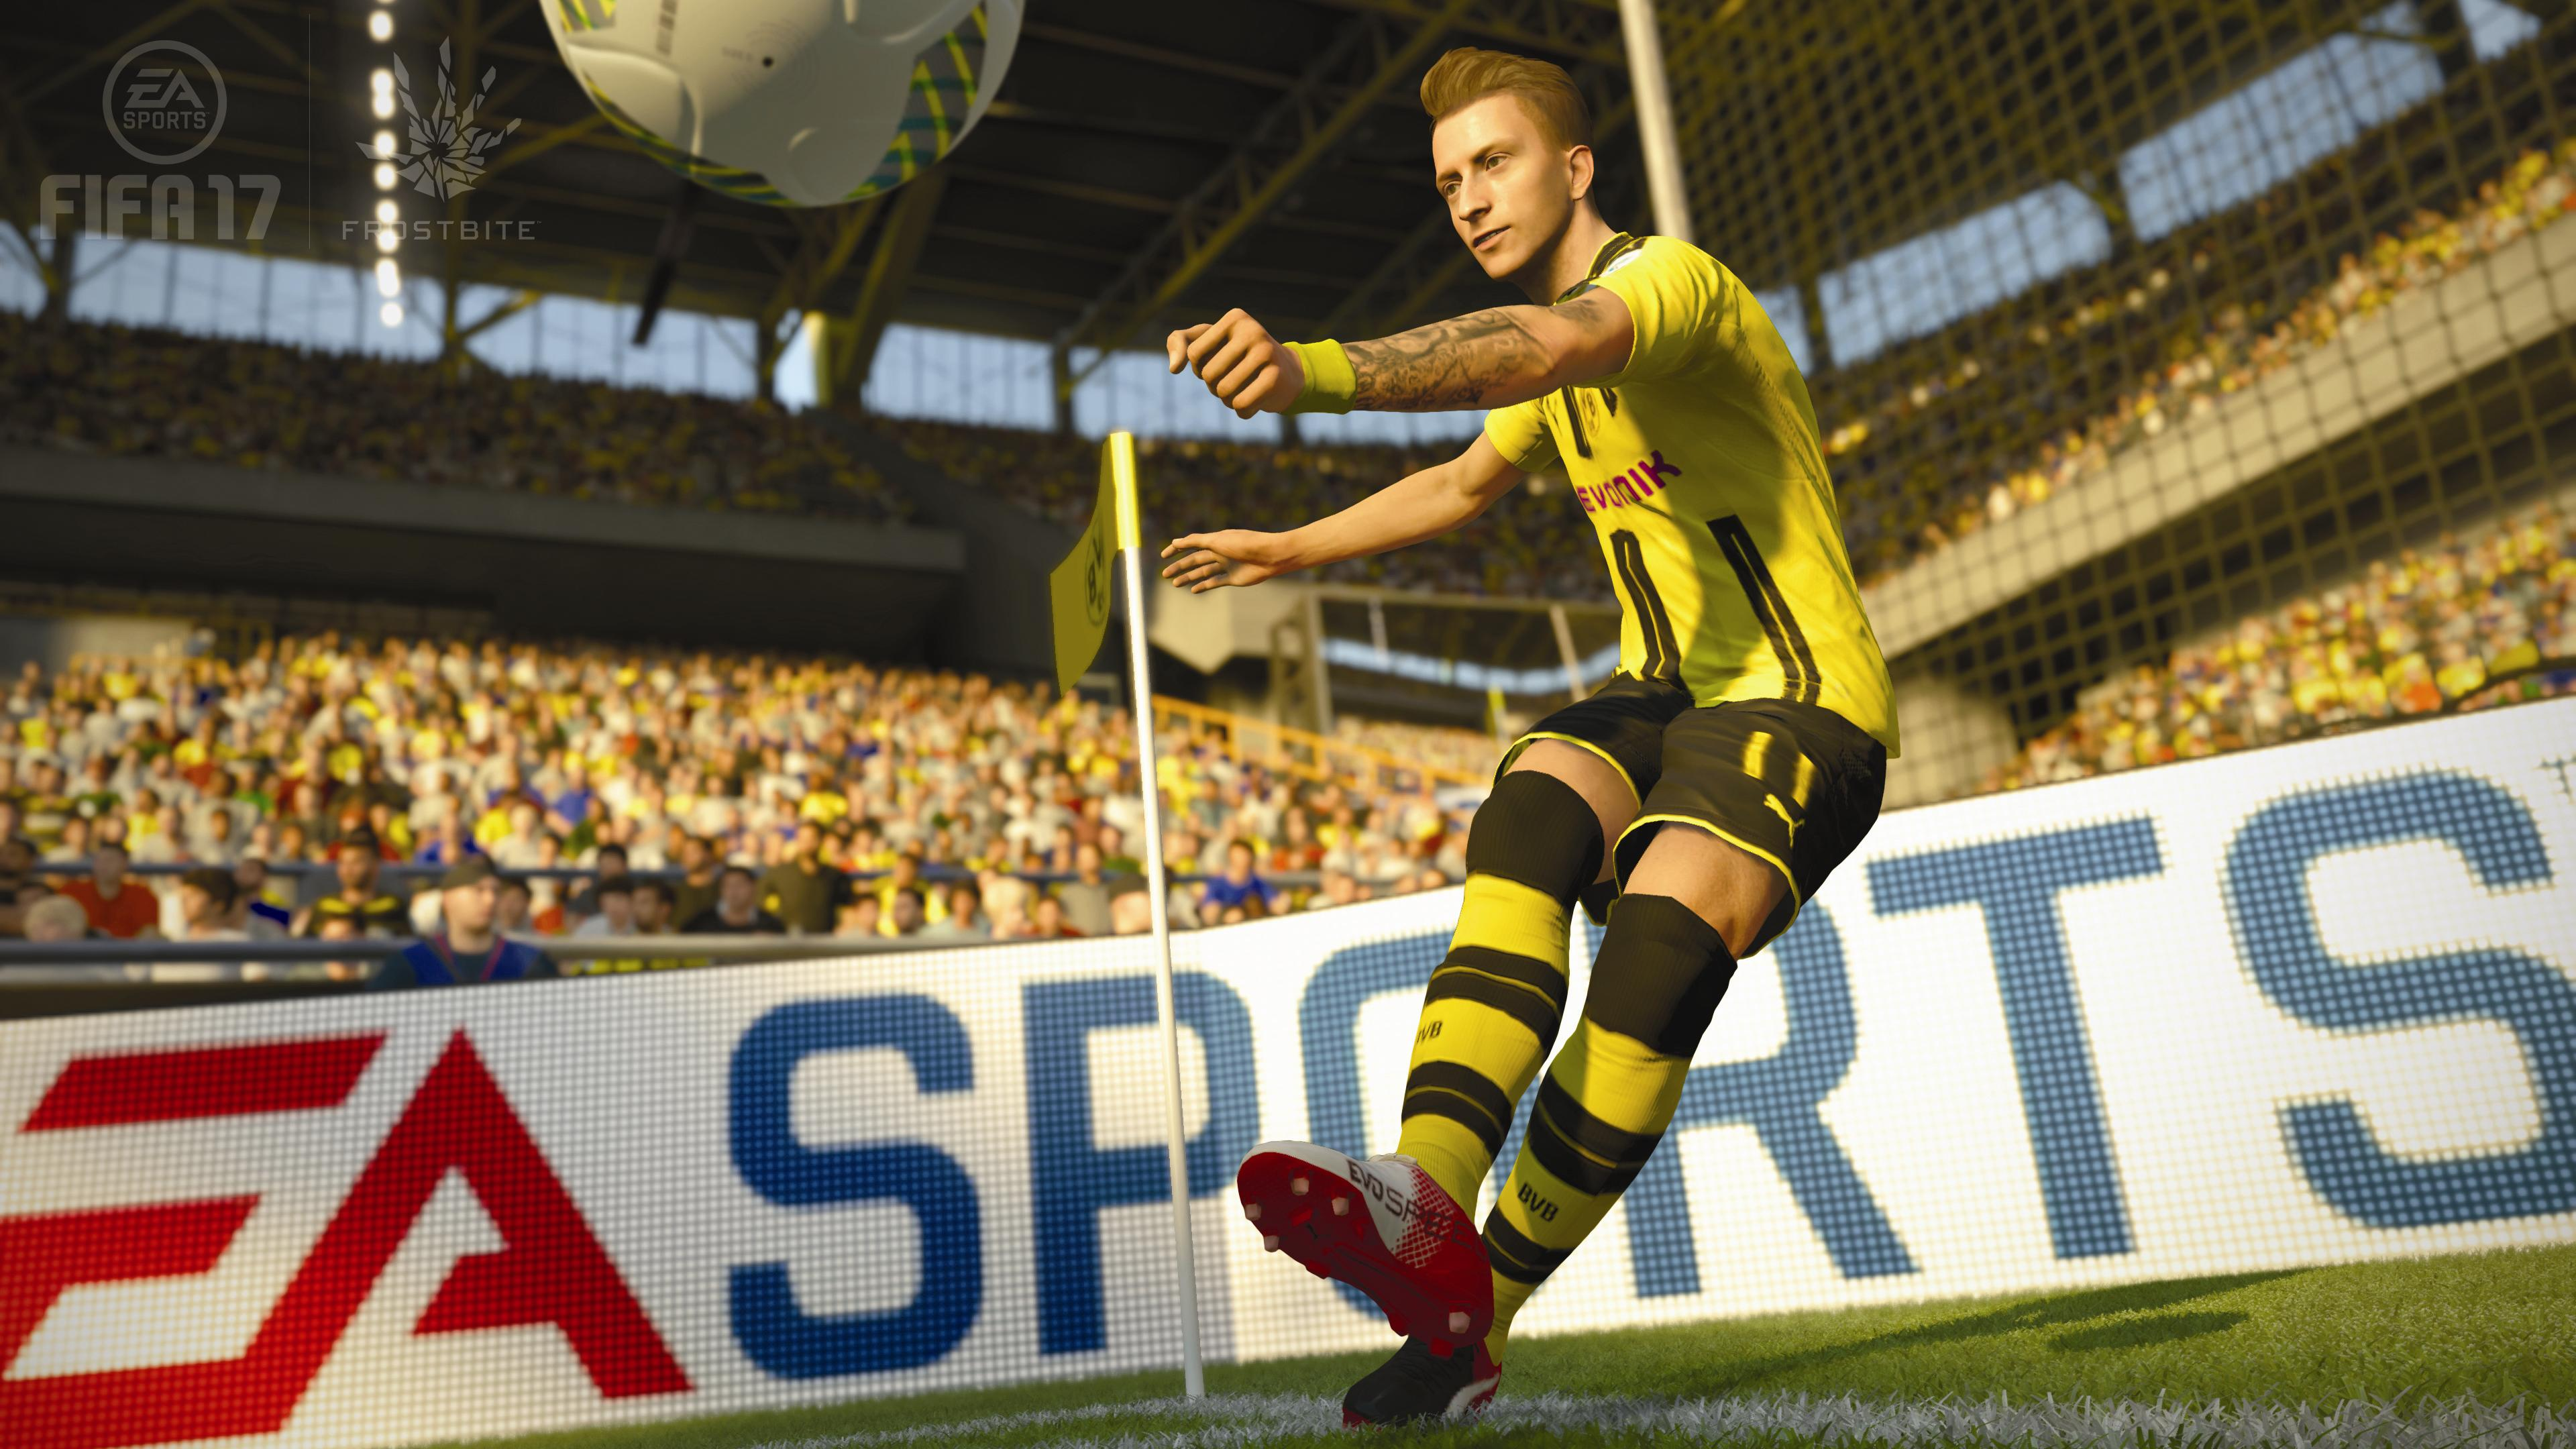 Heres What We Thought About FIFA 17 FIFA17 XB1 PS4 Reus Corner HR WM JPG jpgcopy